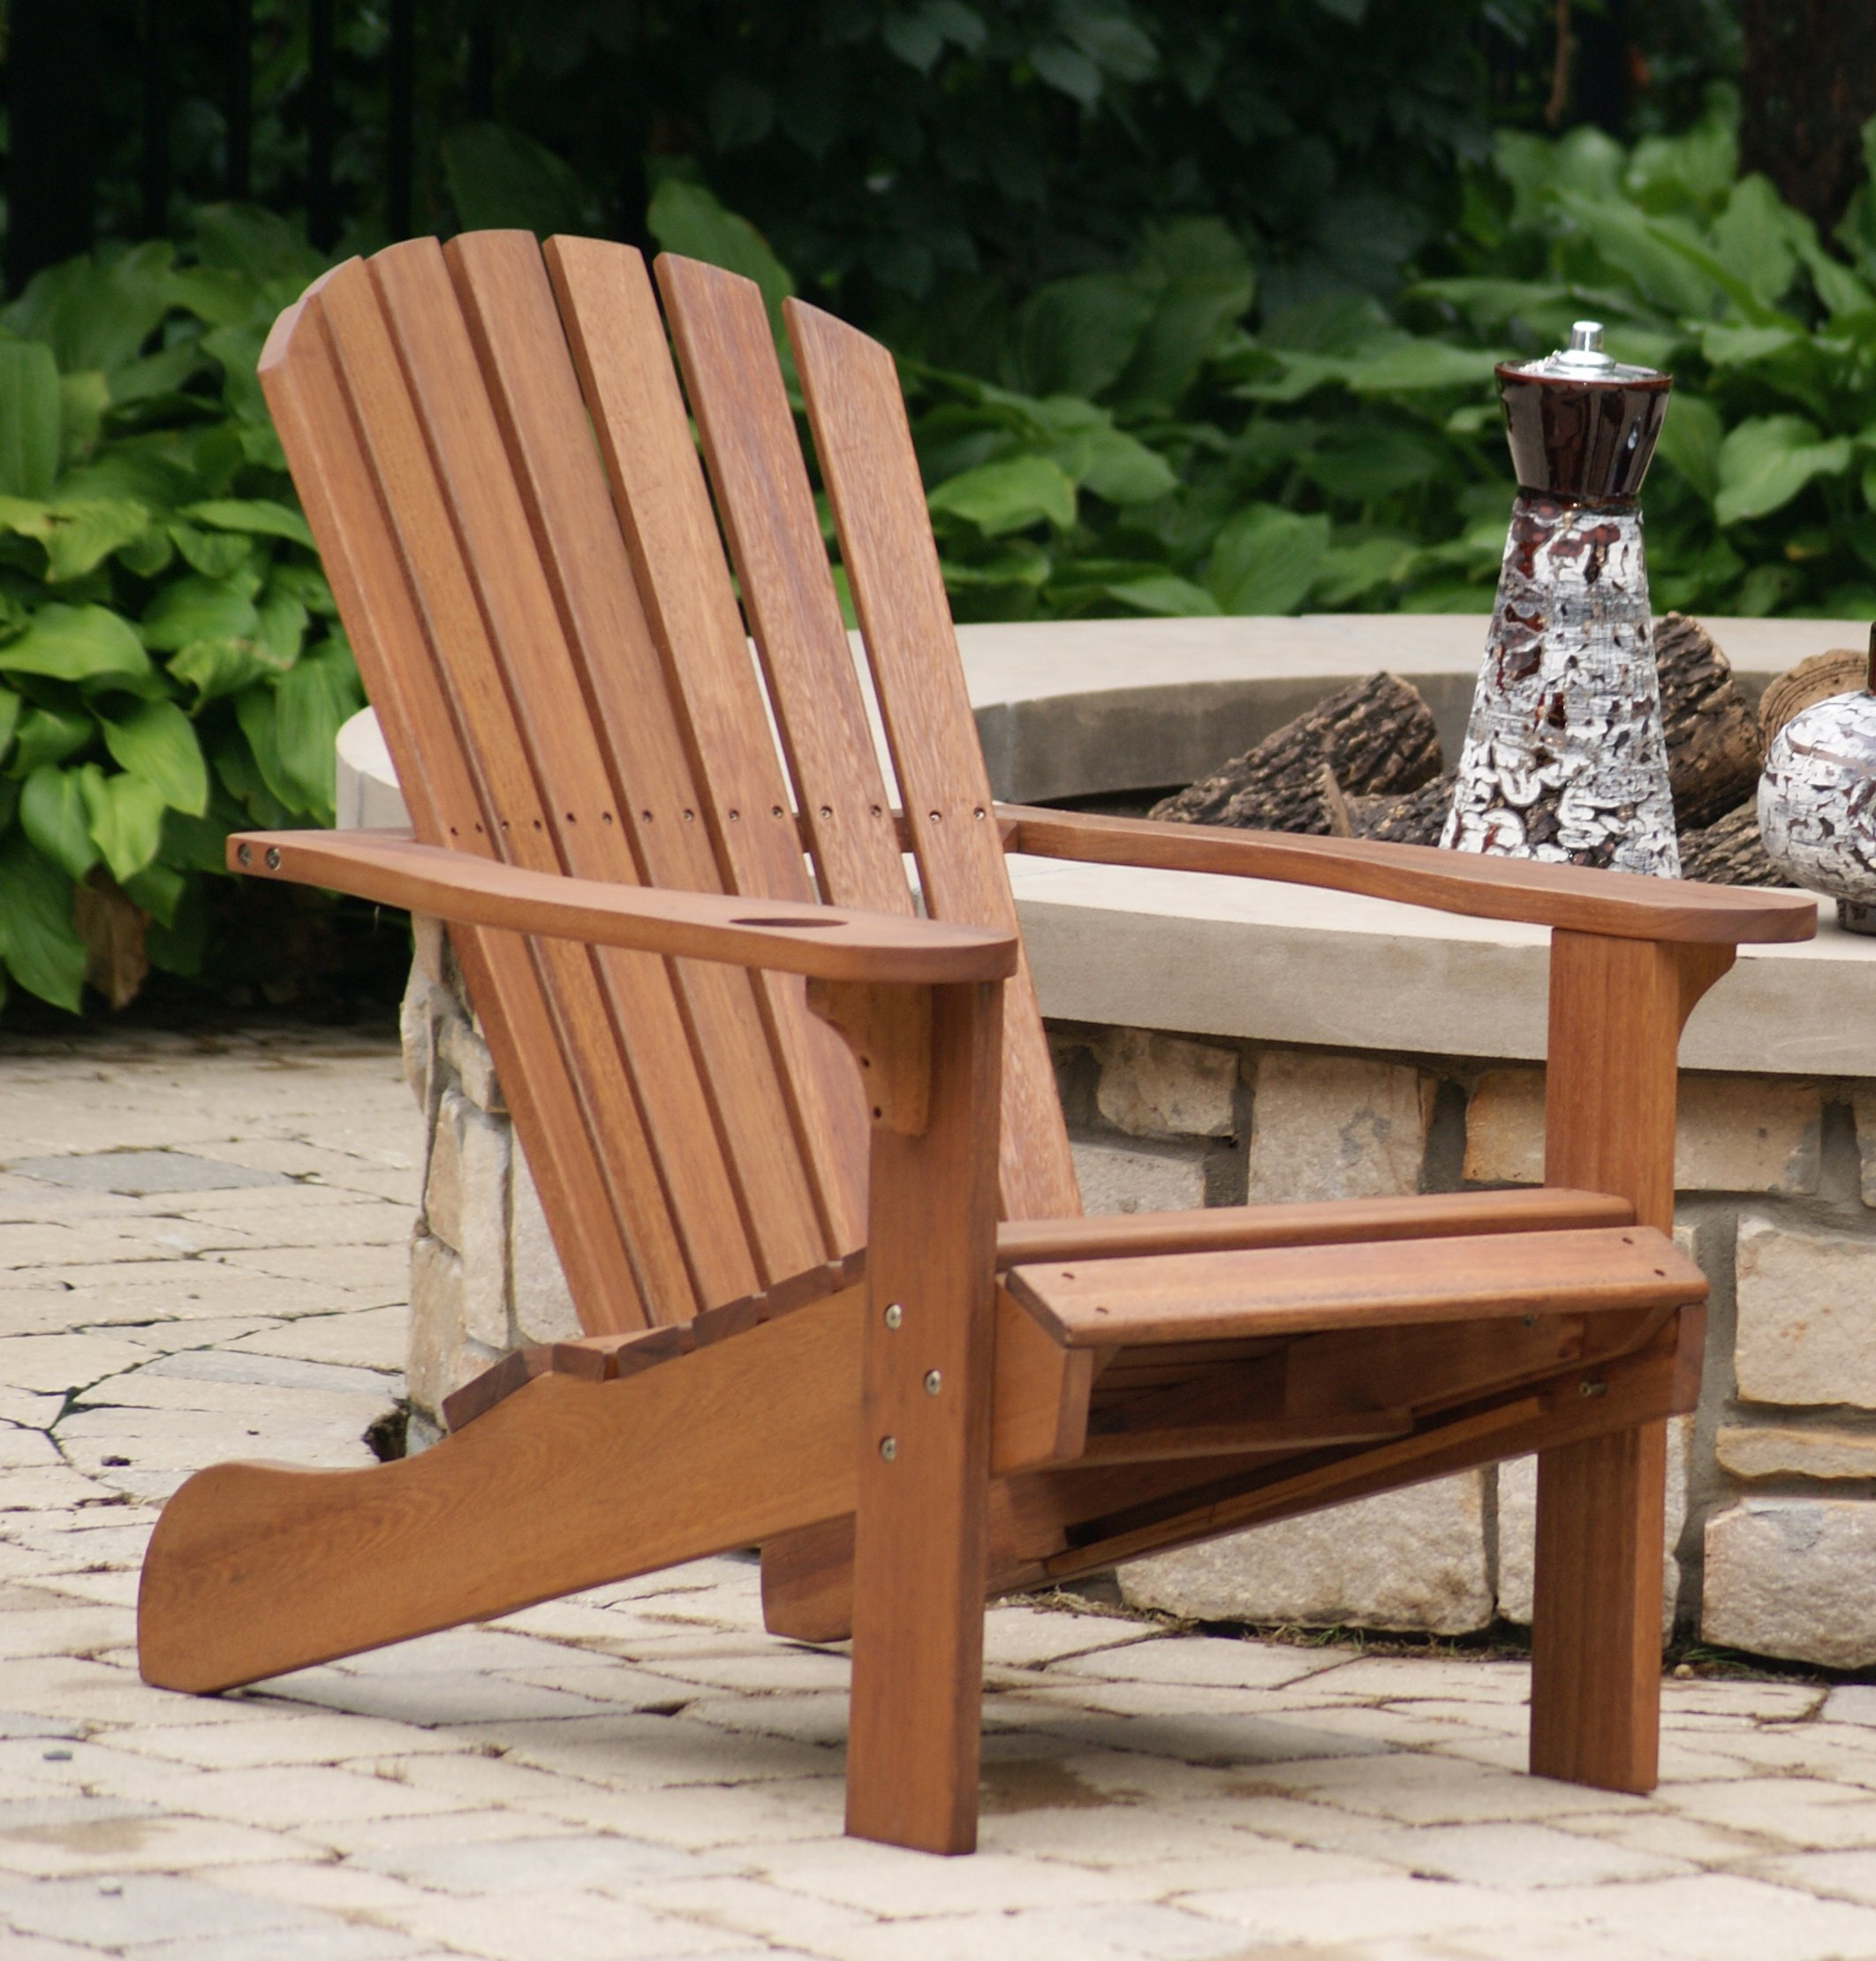 Outdoor Interiors CD3111 Eucalyptus Adirondack Chair and Built In Ottoman by Outdoor Interiors (Image #2)